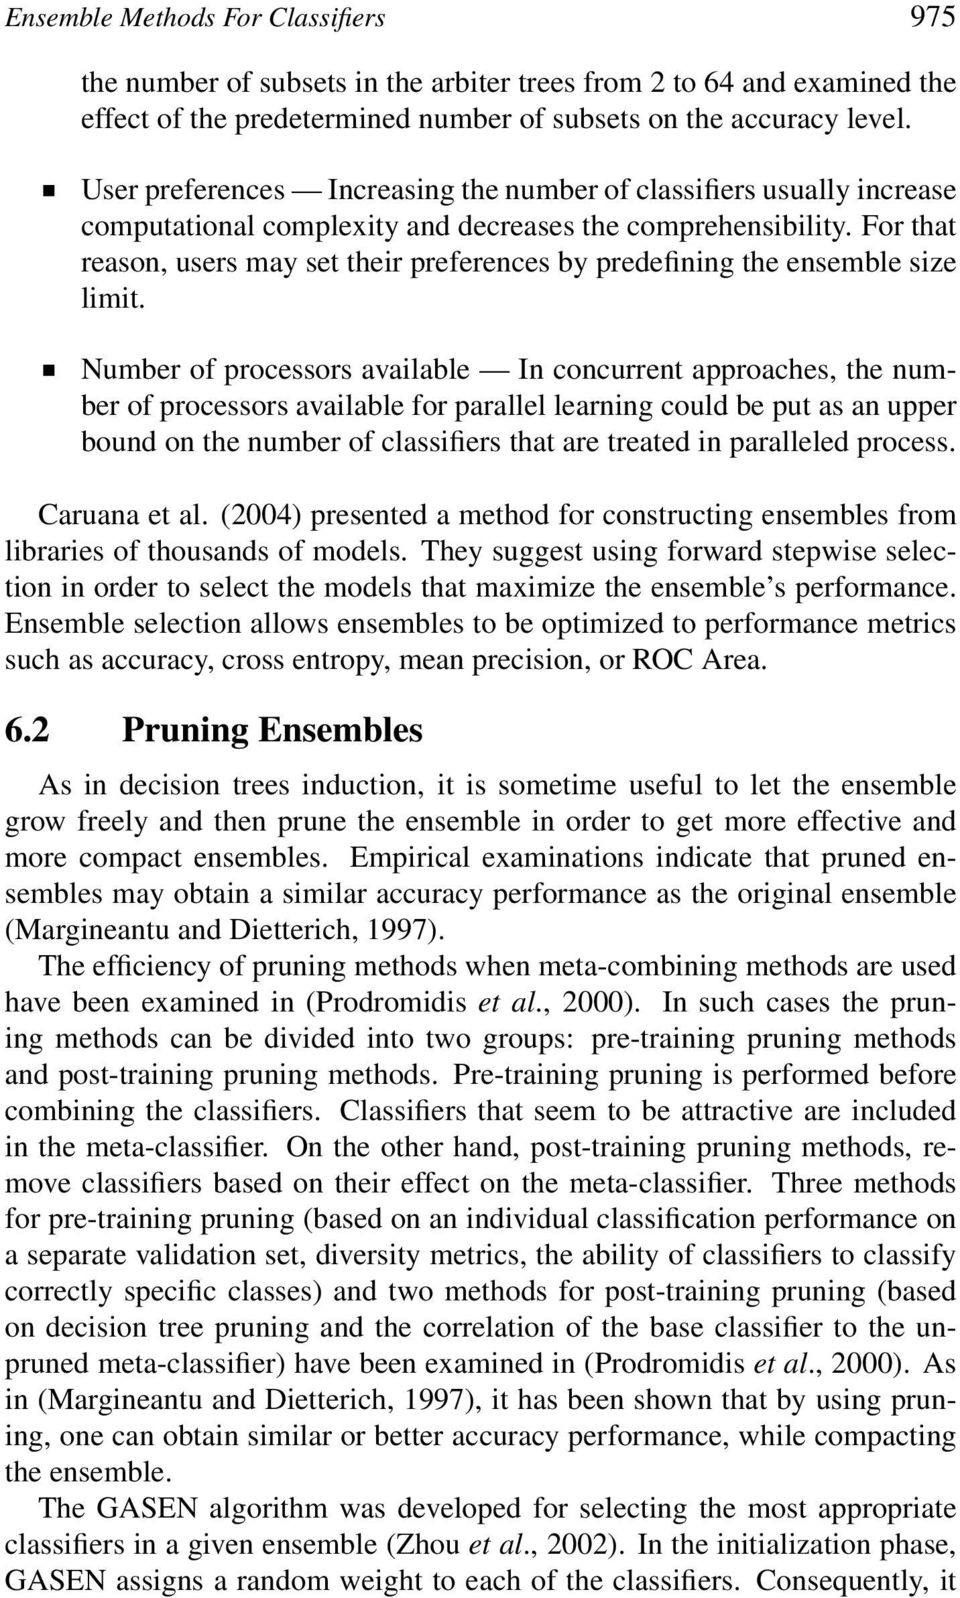 For that reason, users may set their preferences by predefining the ensemble size limit.